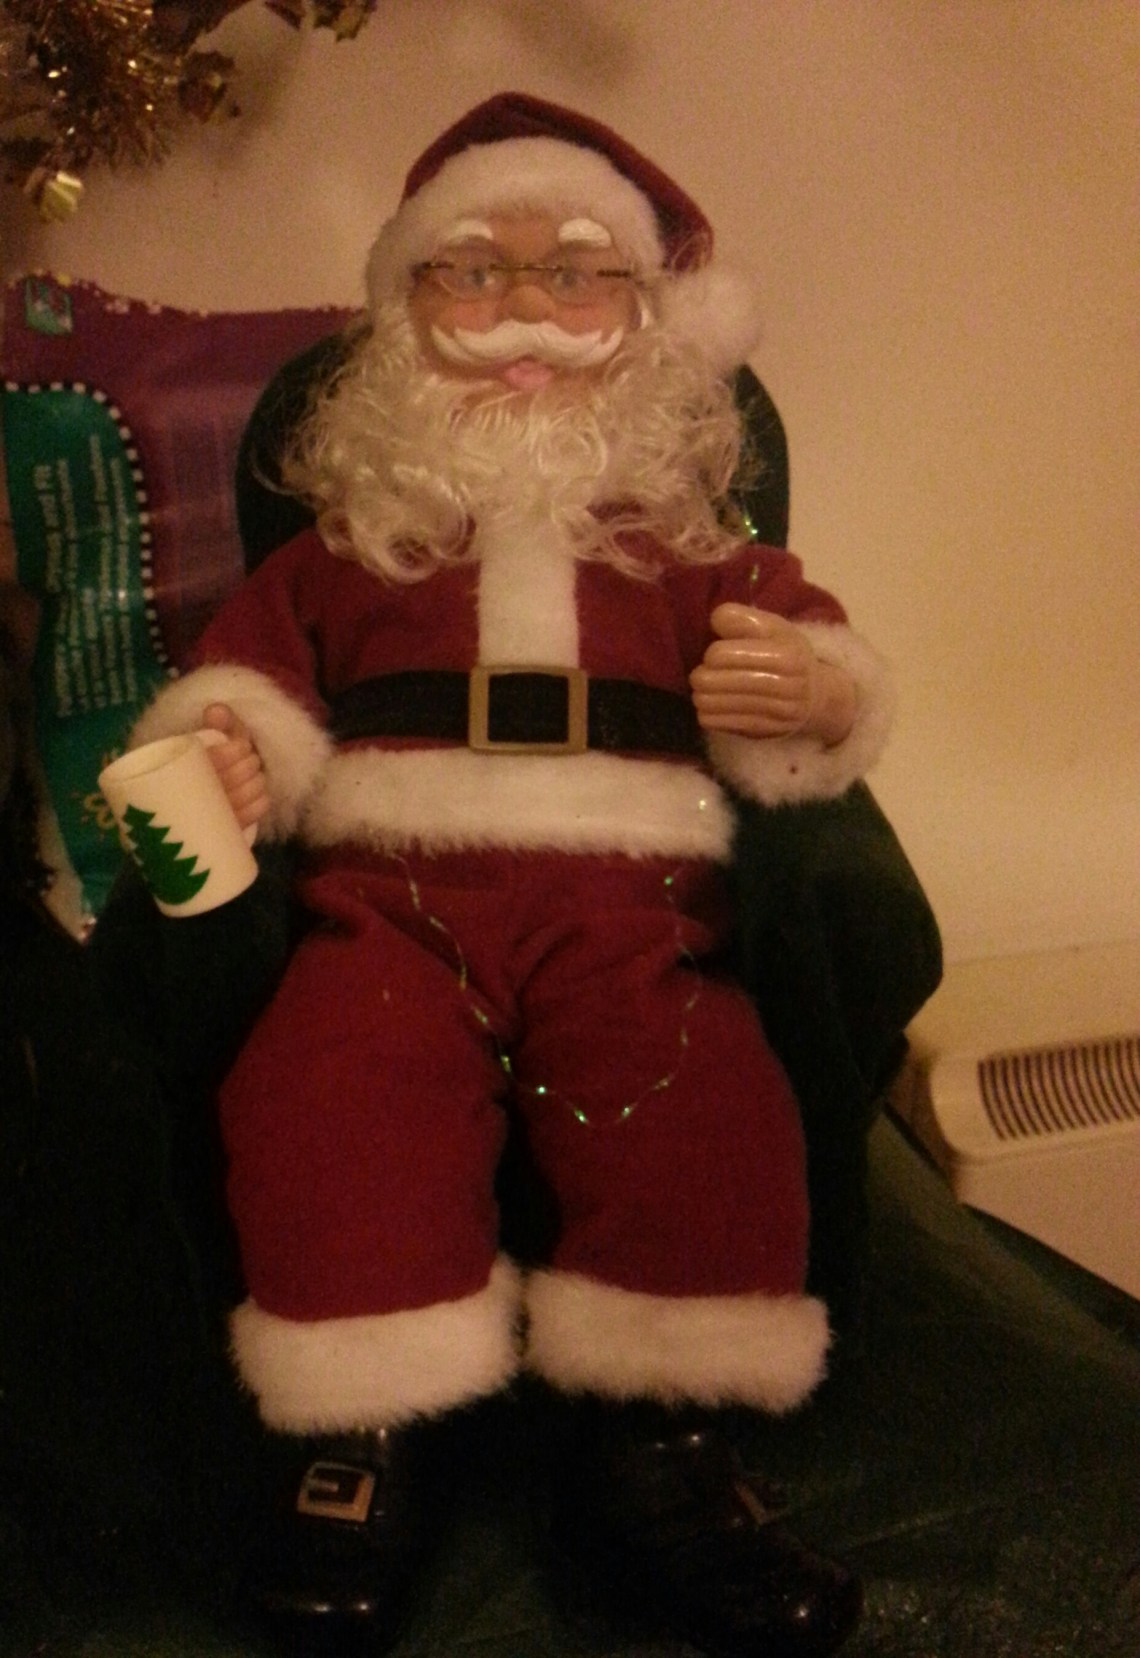 A disappointing visit to see Santa at the Celtic Manor hotel, Newport